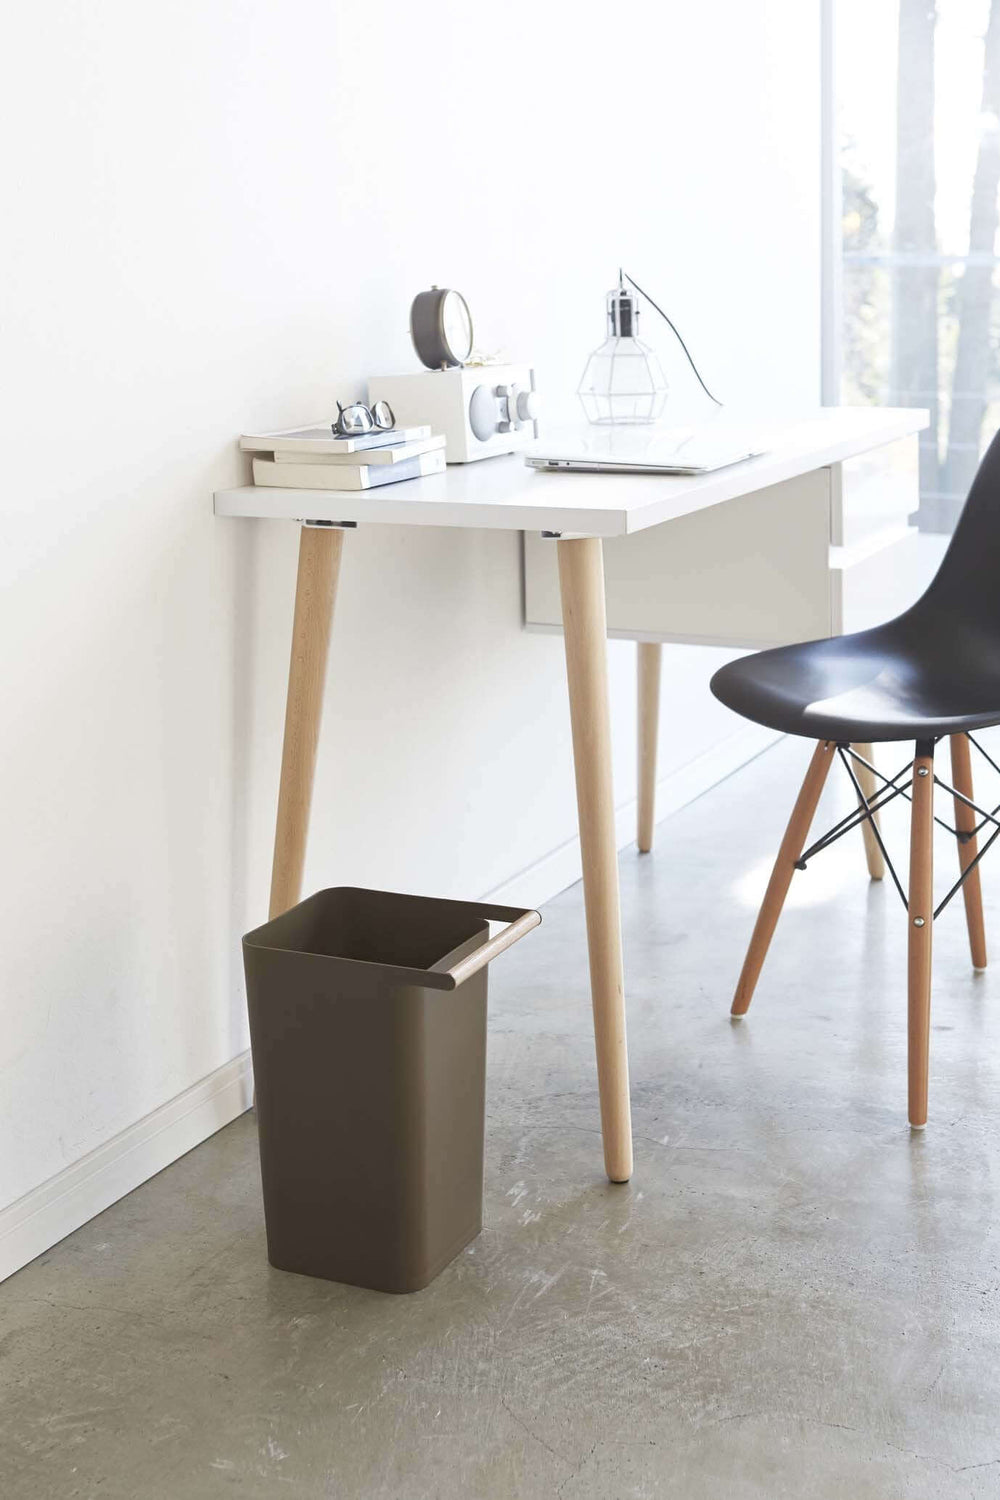 Yamazaki's wastebasket with wooden handle in office next to desk